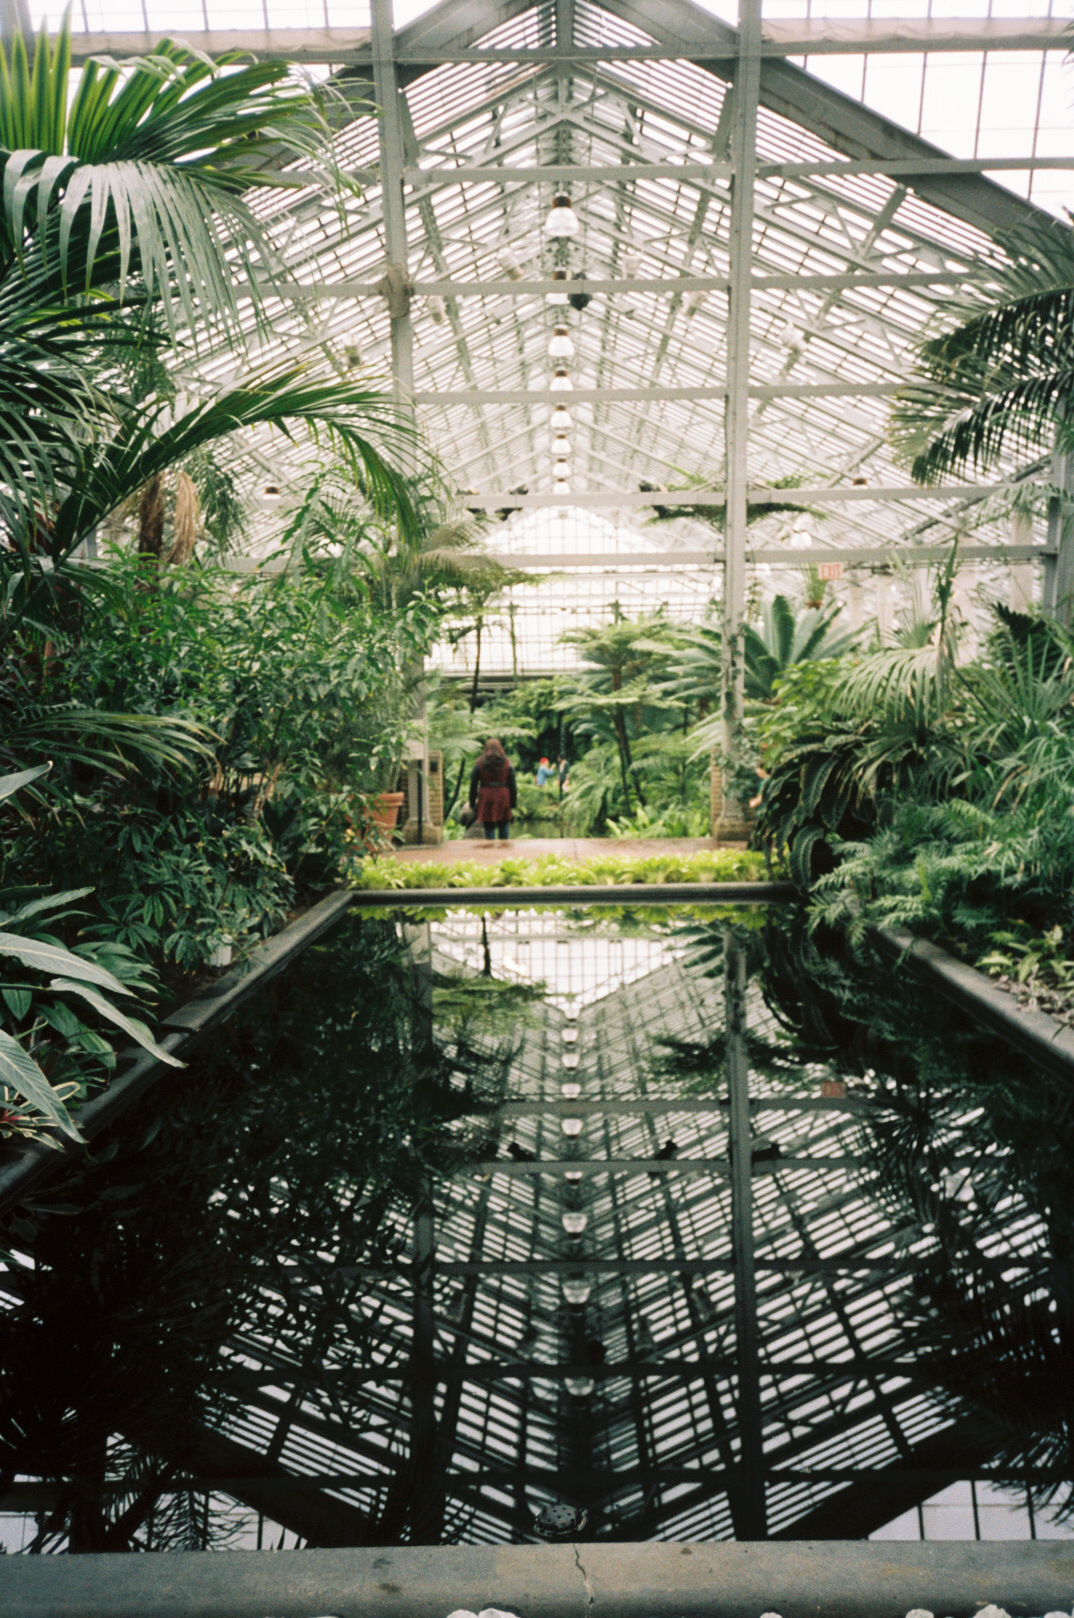 Garfield Park Conservatory shot on  Portra 160  with  Yashica T4